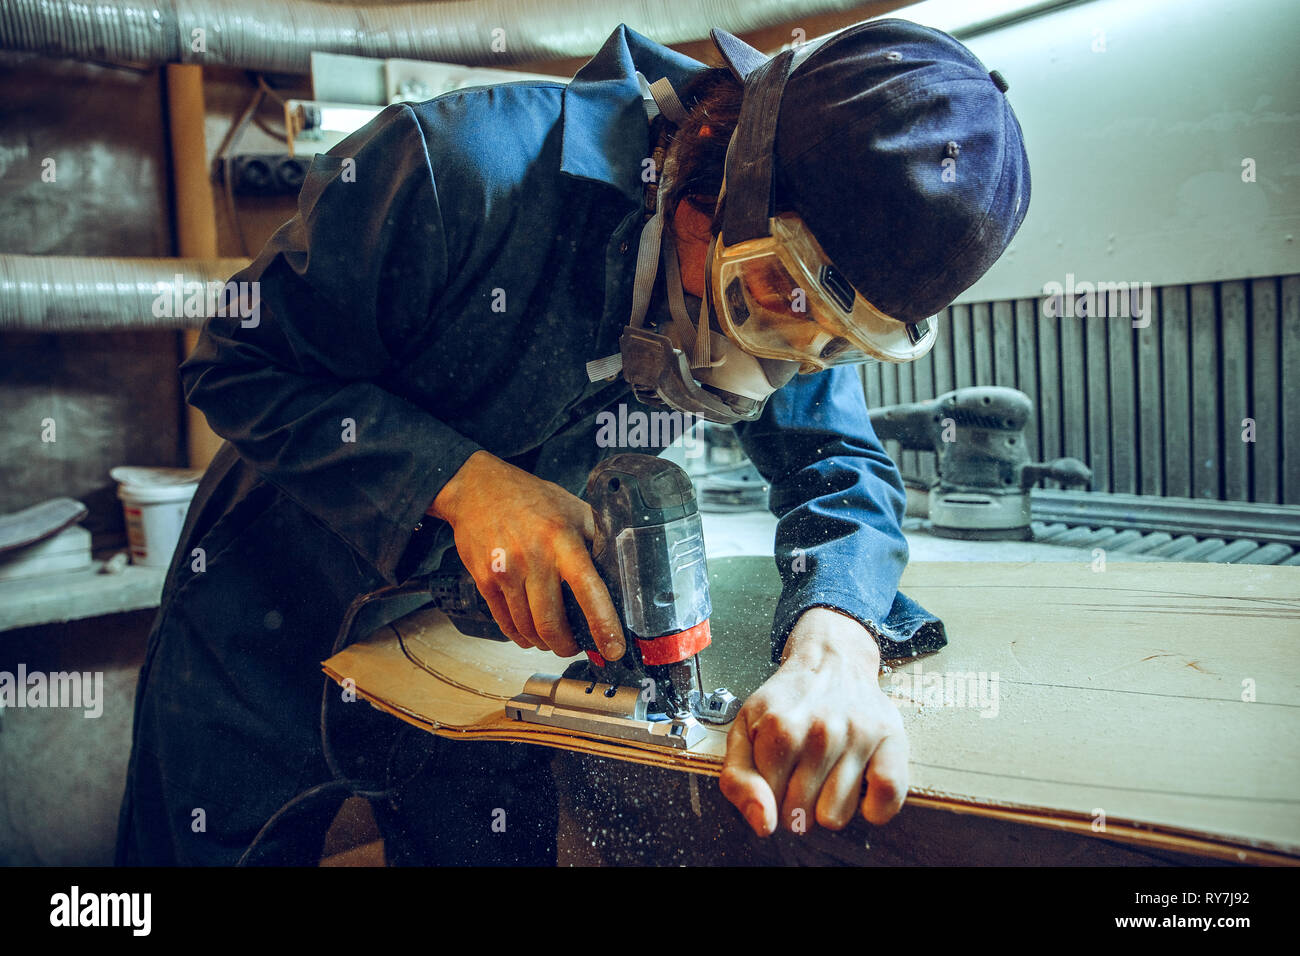 Carpenter using circular saw for cutting wooden boards. Construction details of male worker or handy man with power tools Stock Photo